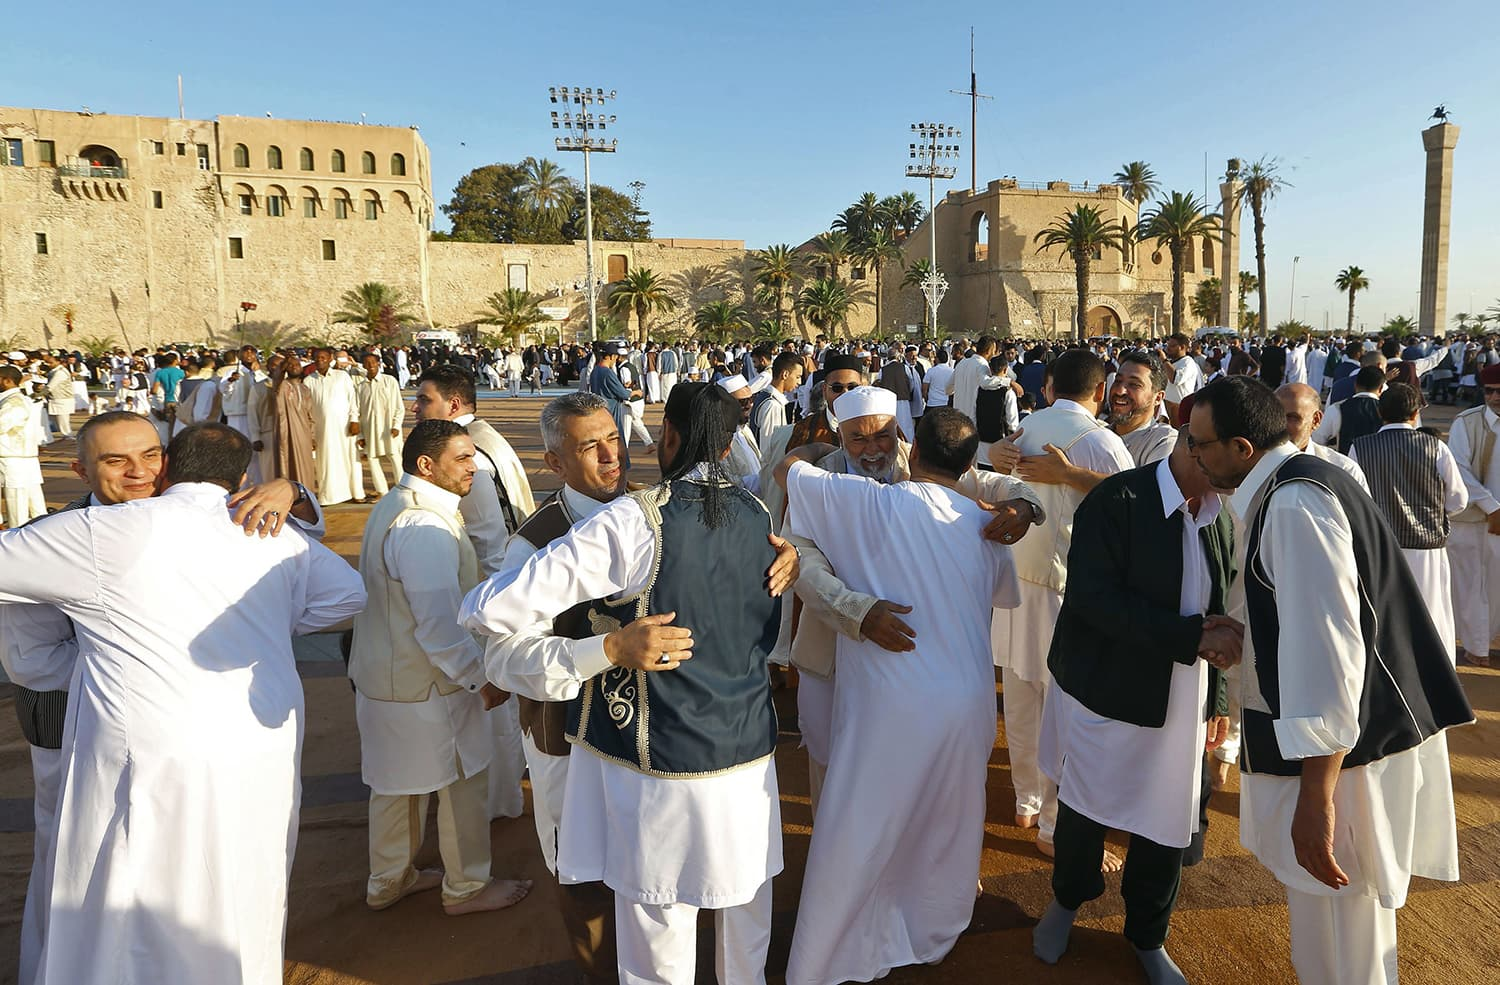 Libyan Muslim worshipers gather to perform Eidul Fitr prayers at the Martyrs' Square in the capital Tripoli. — AFP